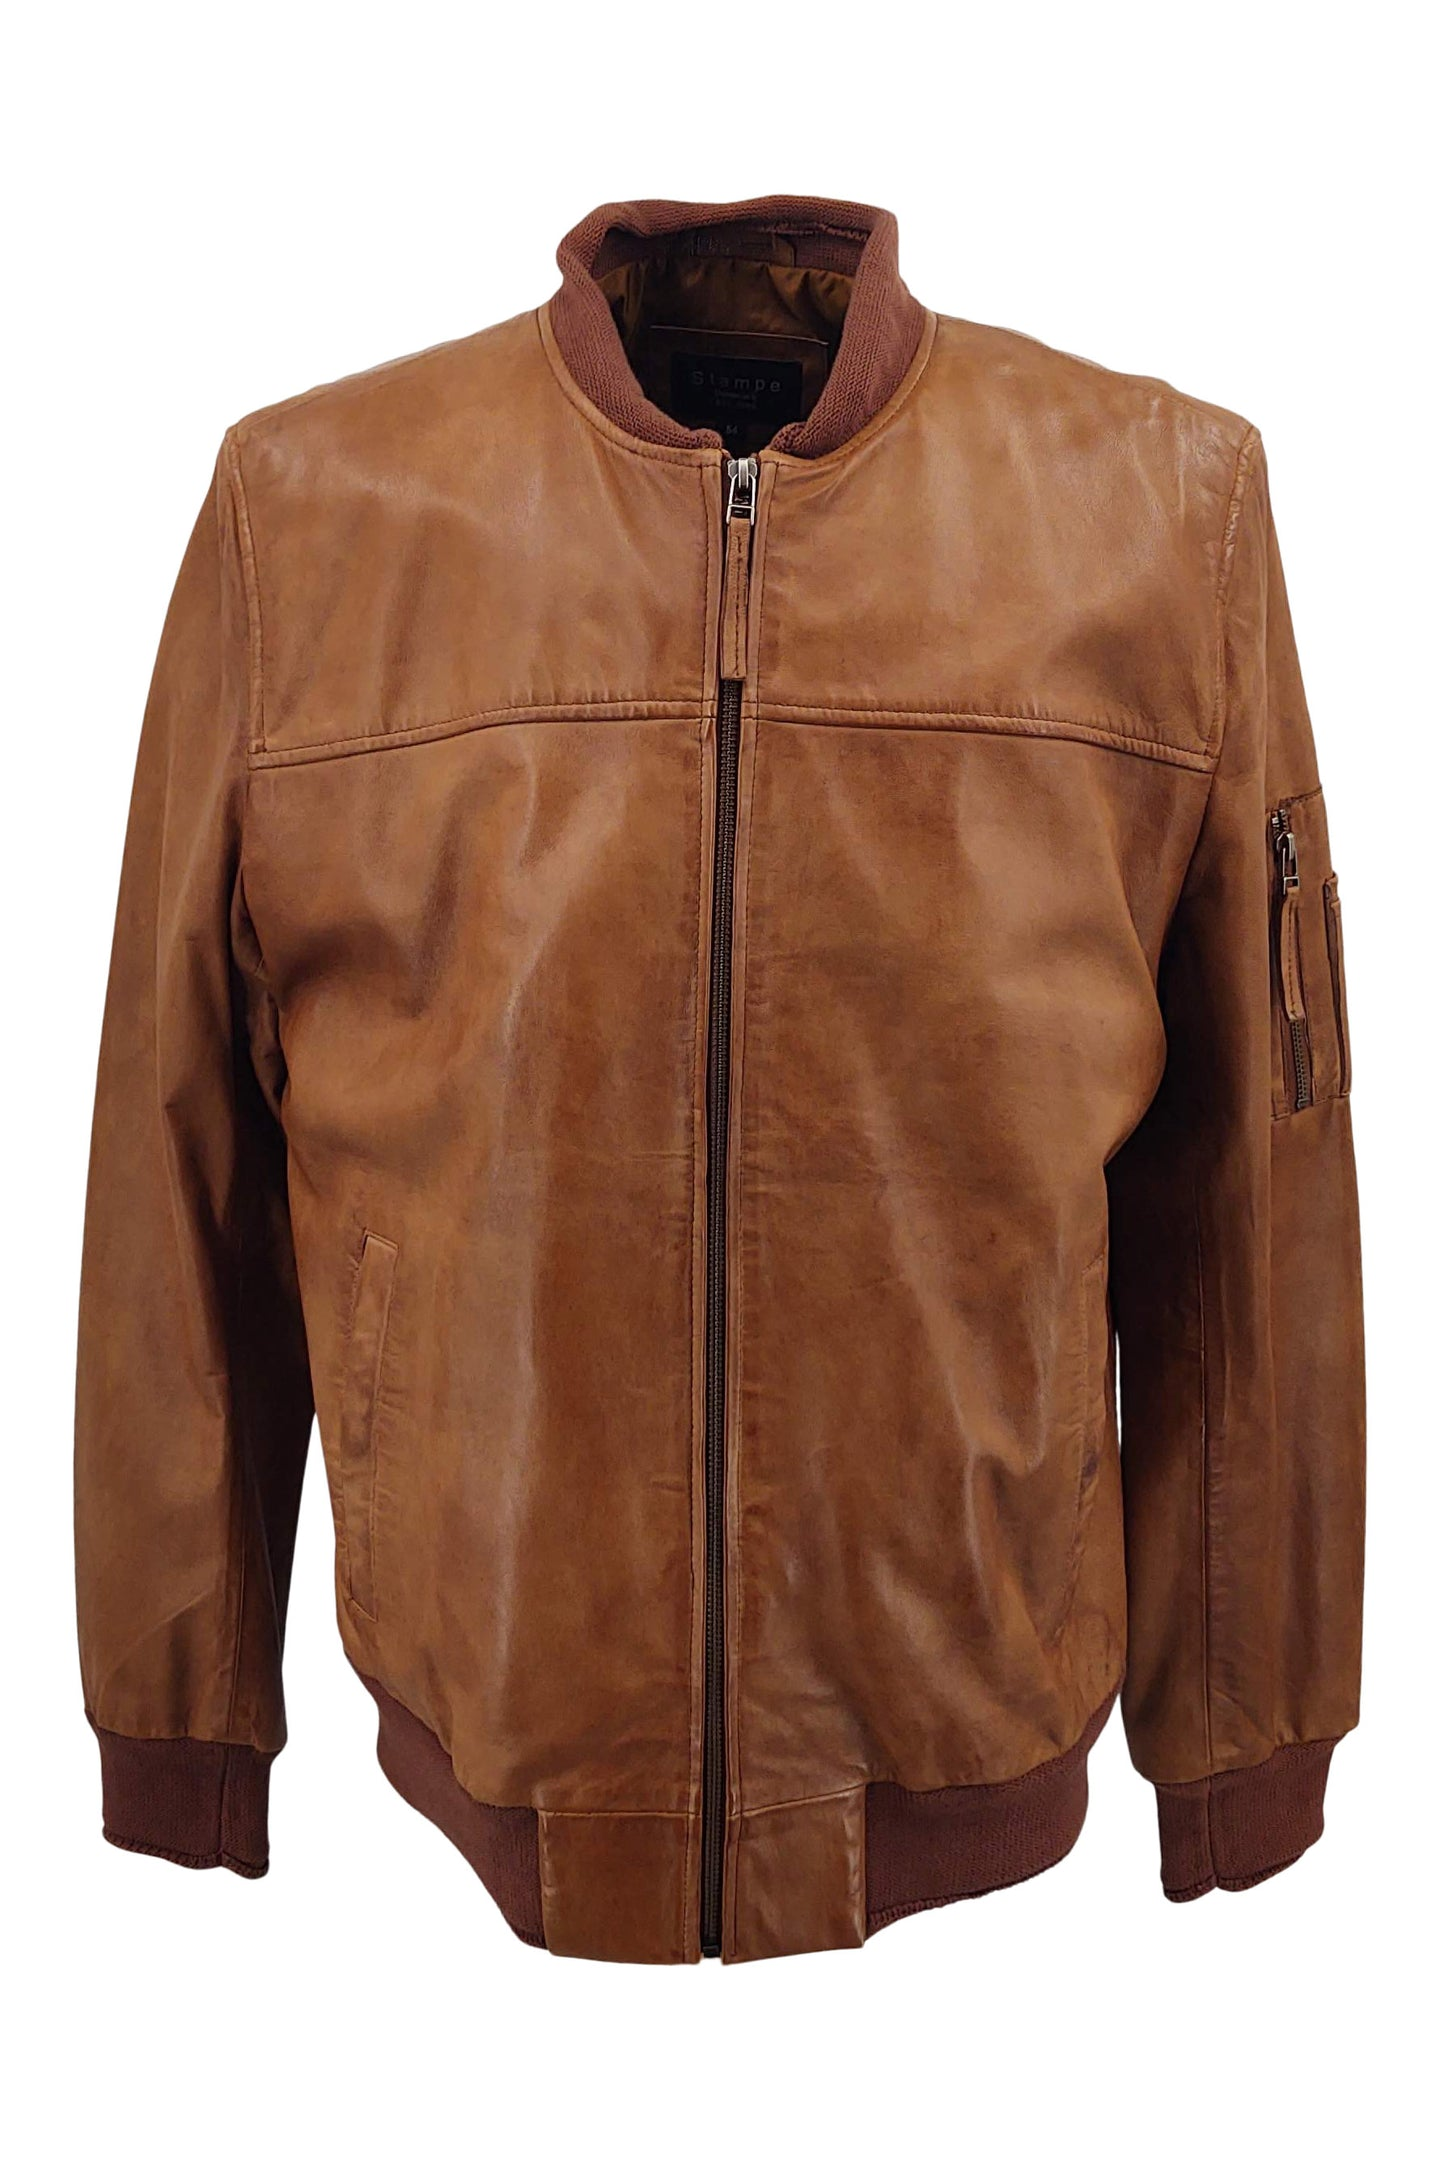 Mens Piave - Lamb Rover Leather - Man - Dark Cognac / Læderjakke | STAMPE PELS